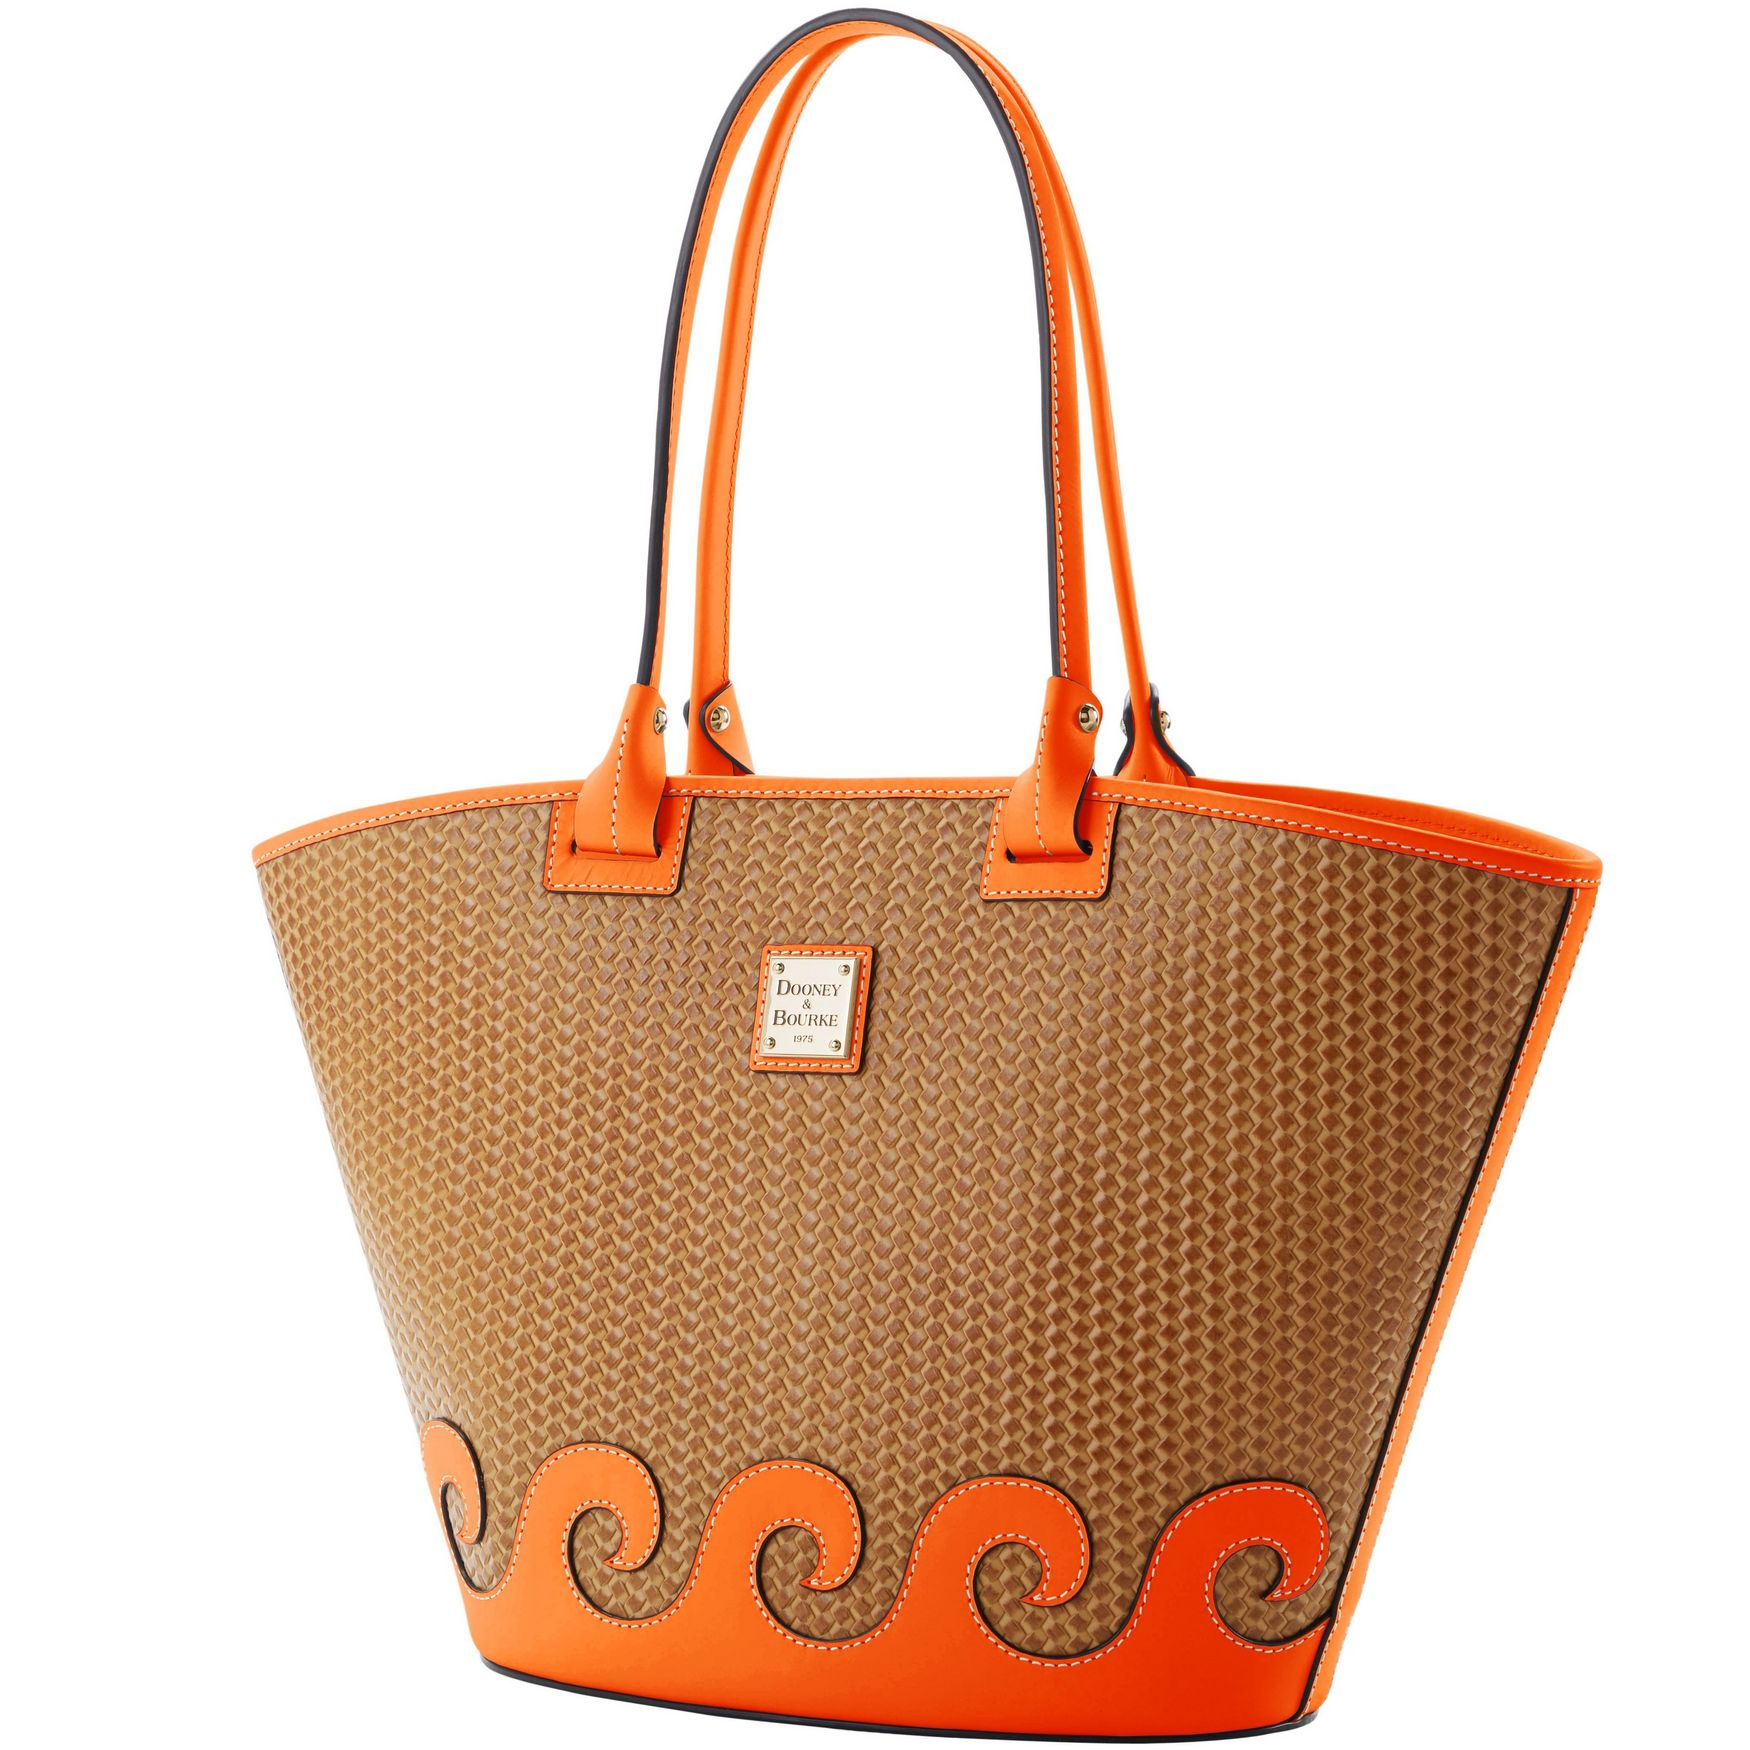 Details about Dooney & Bourke Beacon Woven Large Atlantic Tote.